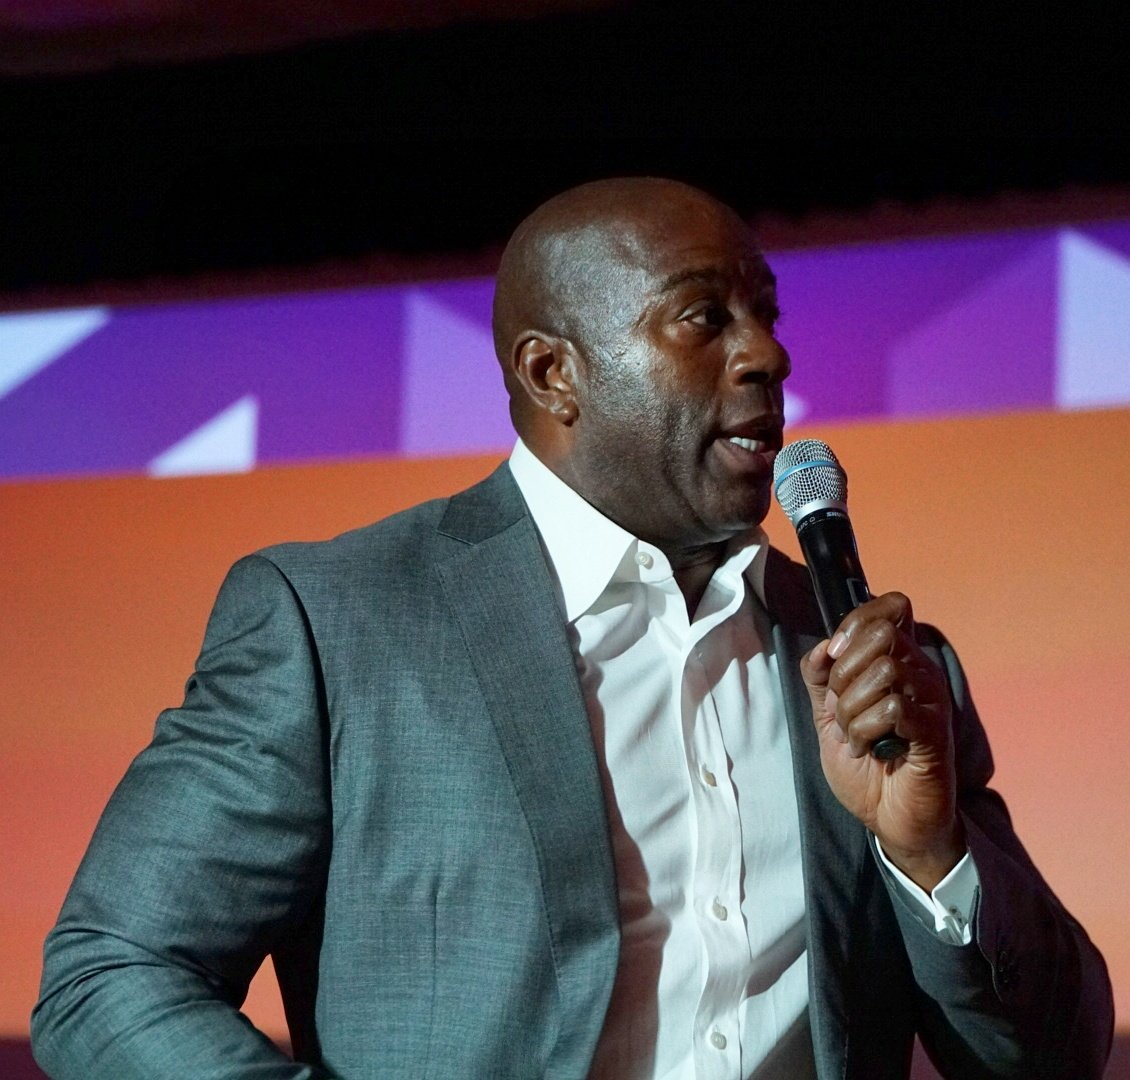 wejobes: @MagicJohnson is in the house! #MagentoImagine https://t.co/CaVH9o1RbB